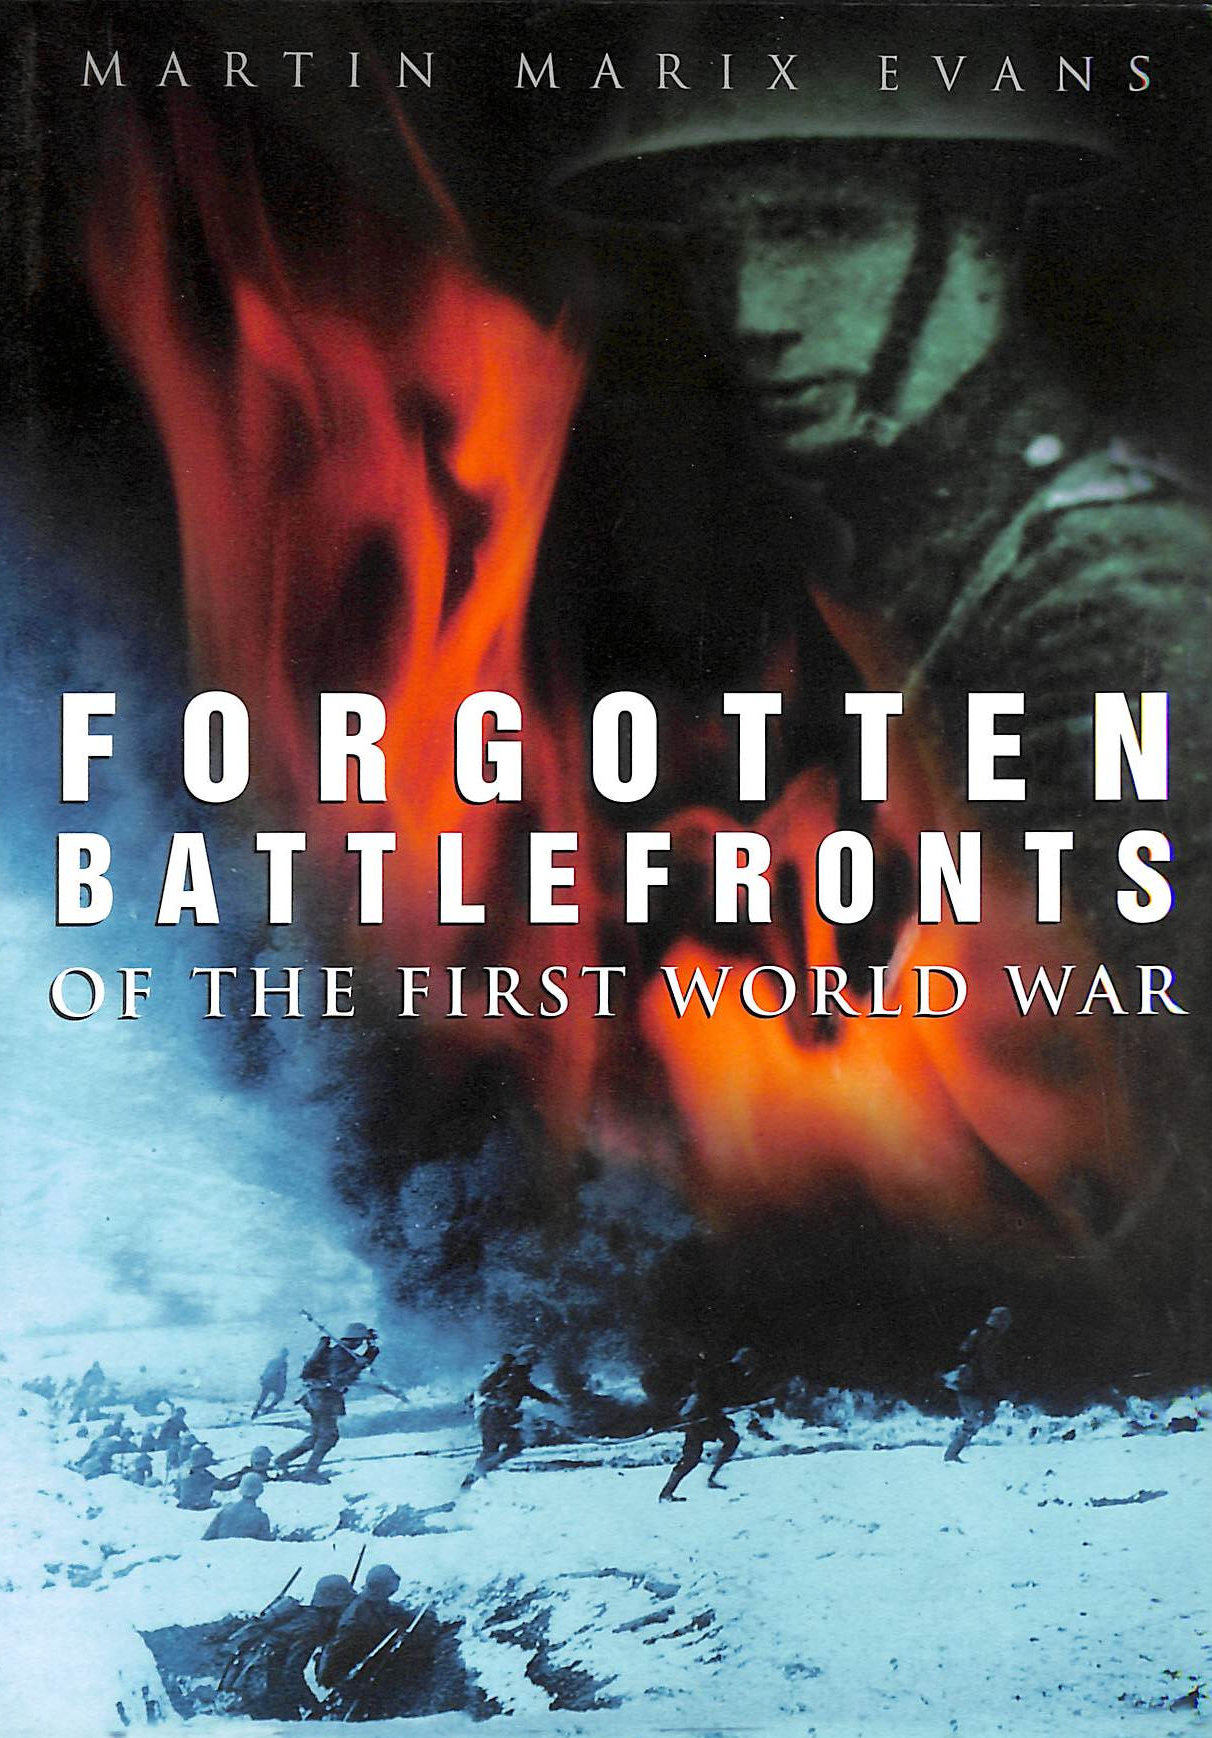 Image for Forgotten Battlefronts of the First World War